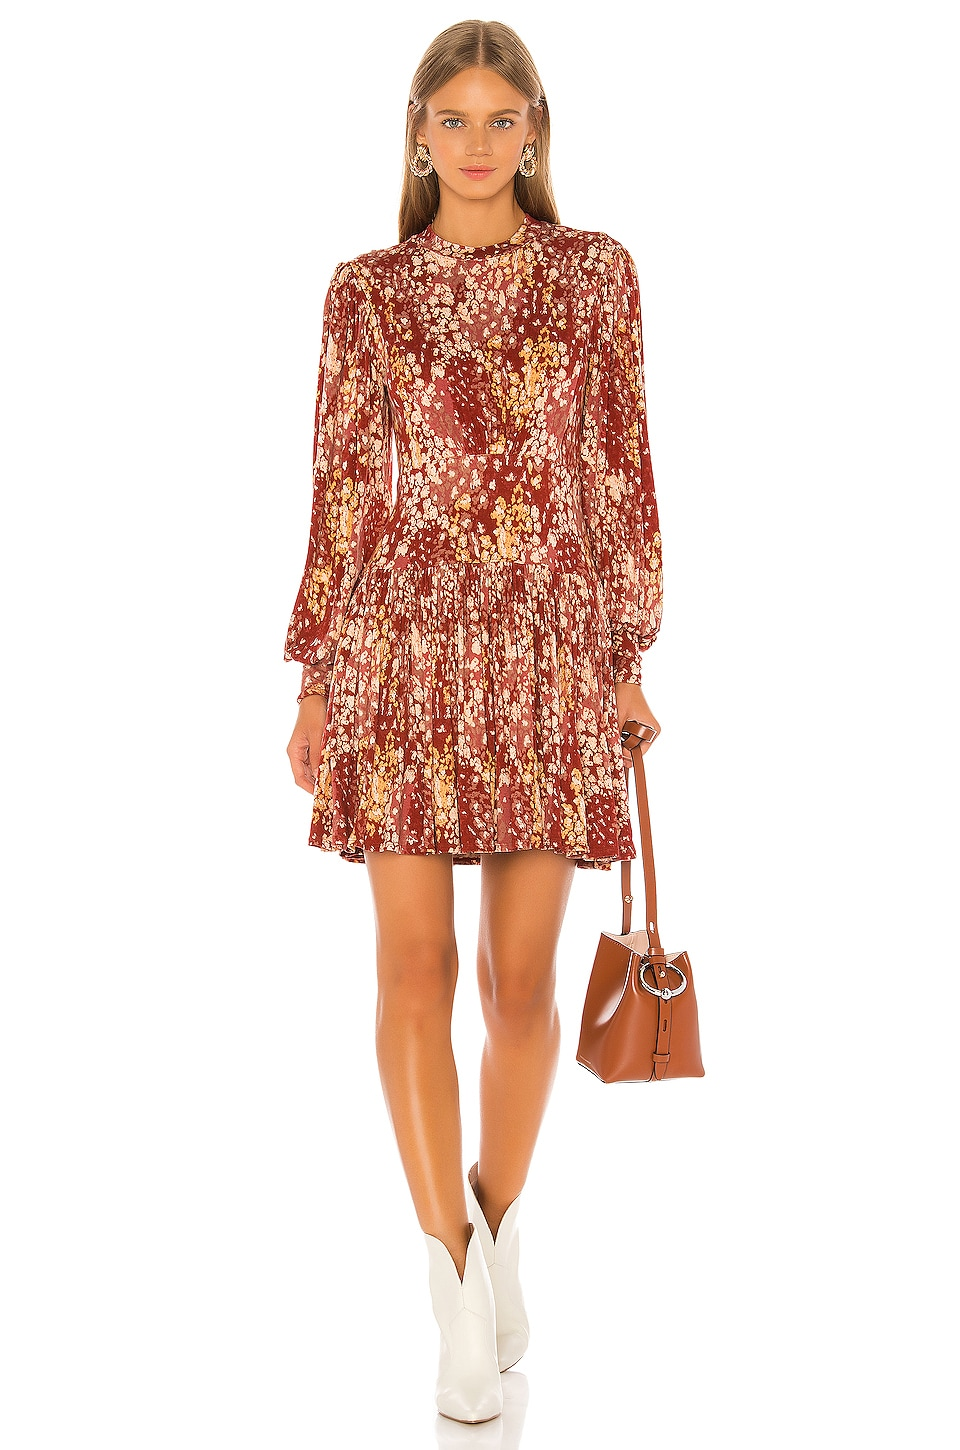 Free People Heartbeats Mini Dress in Red